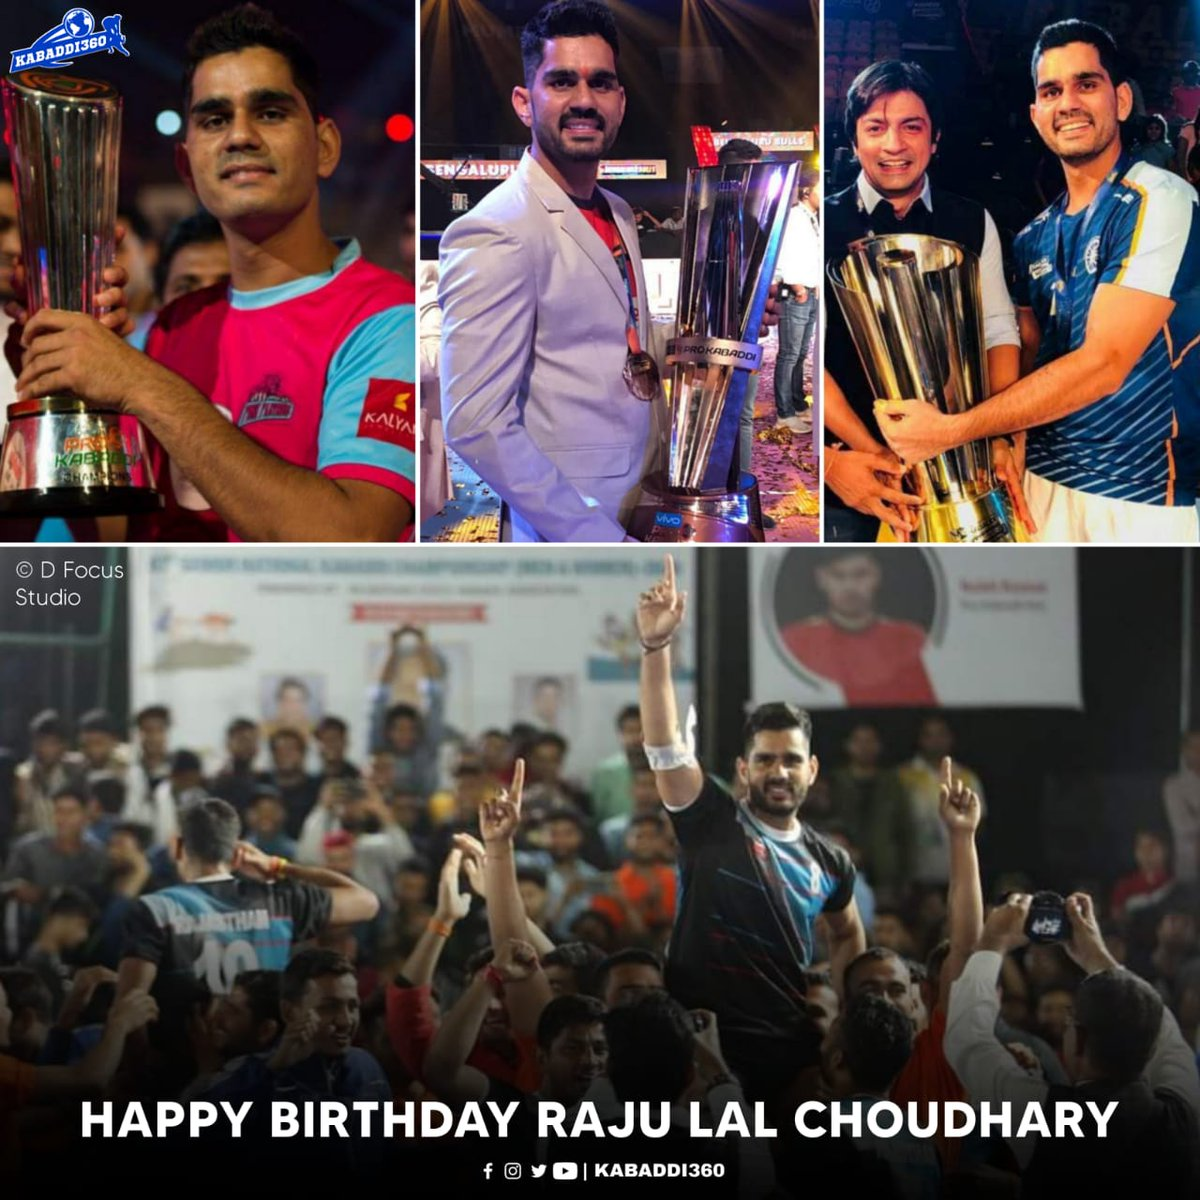 🏆🏆 Part of PKL winning teams twice (S1 & S6) 🥇 Kabaddi Masters & 🥉 2018 Asian Games for India 🇮🇳 🥉 Captained Rajasthan to bronze in 67th Sr. Nationals  Happy birthday Raju Lal Choudhary 🥳  #RajuLalChoudhary #HappyBirthday #Kabaddi360